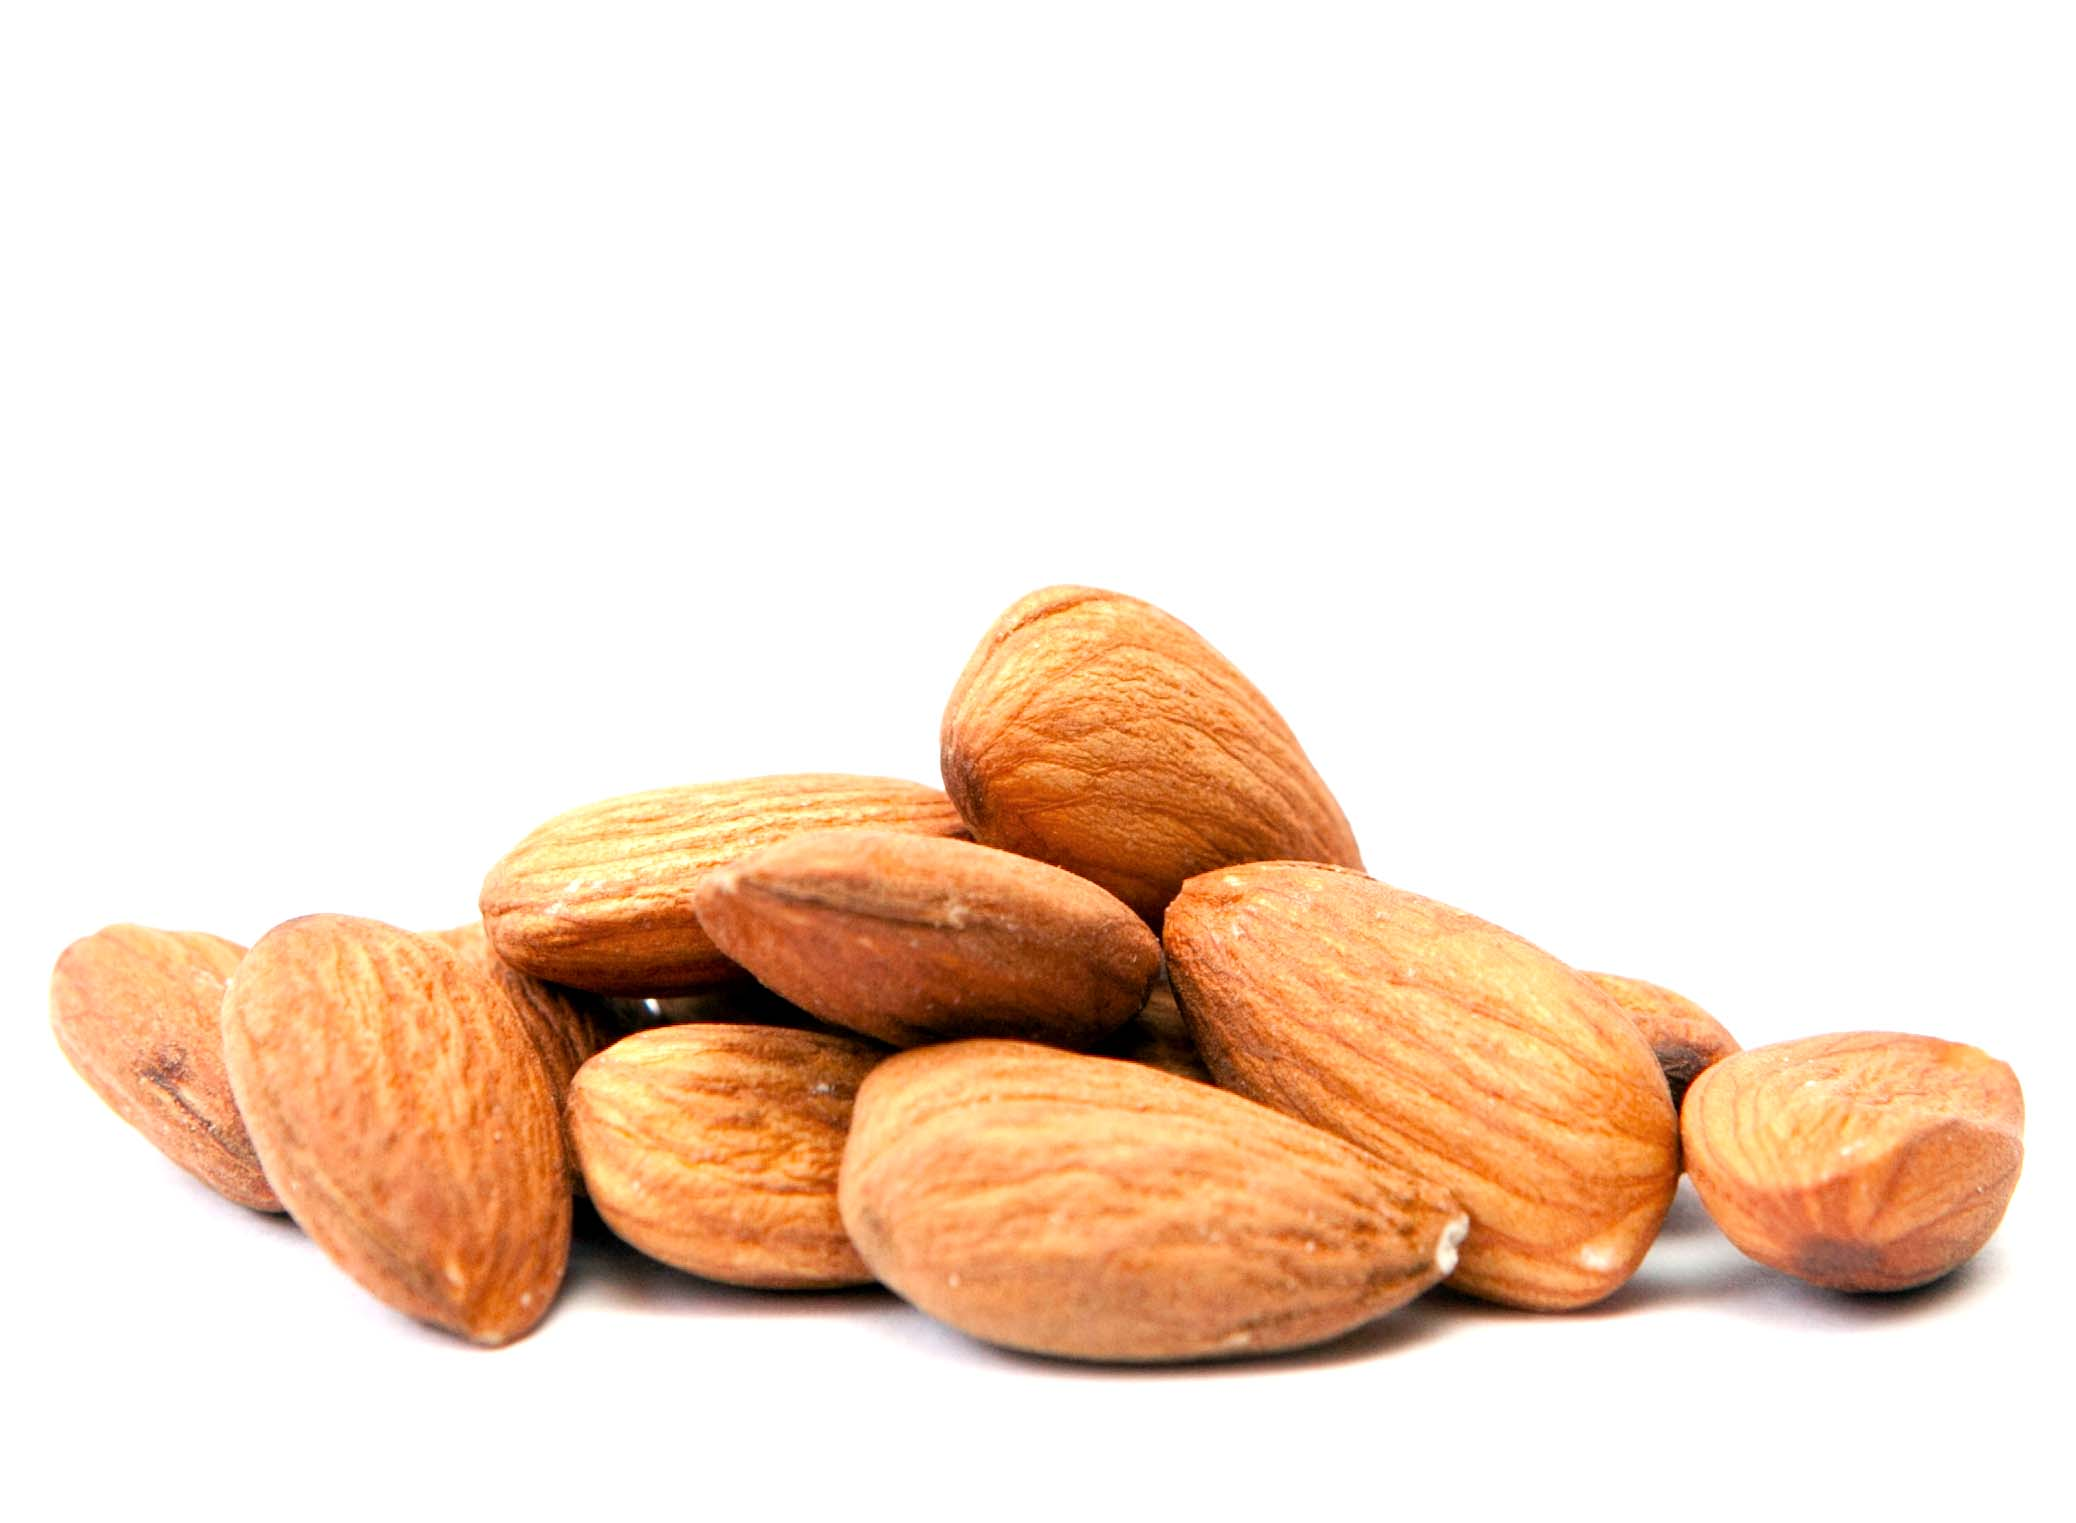 closeup of pile of almonds to help illustrate the benefits of almonds